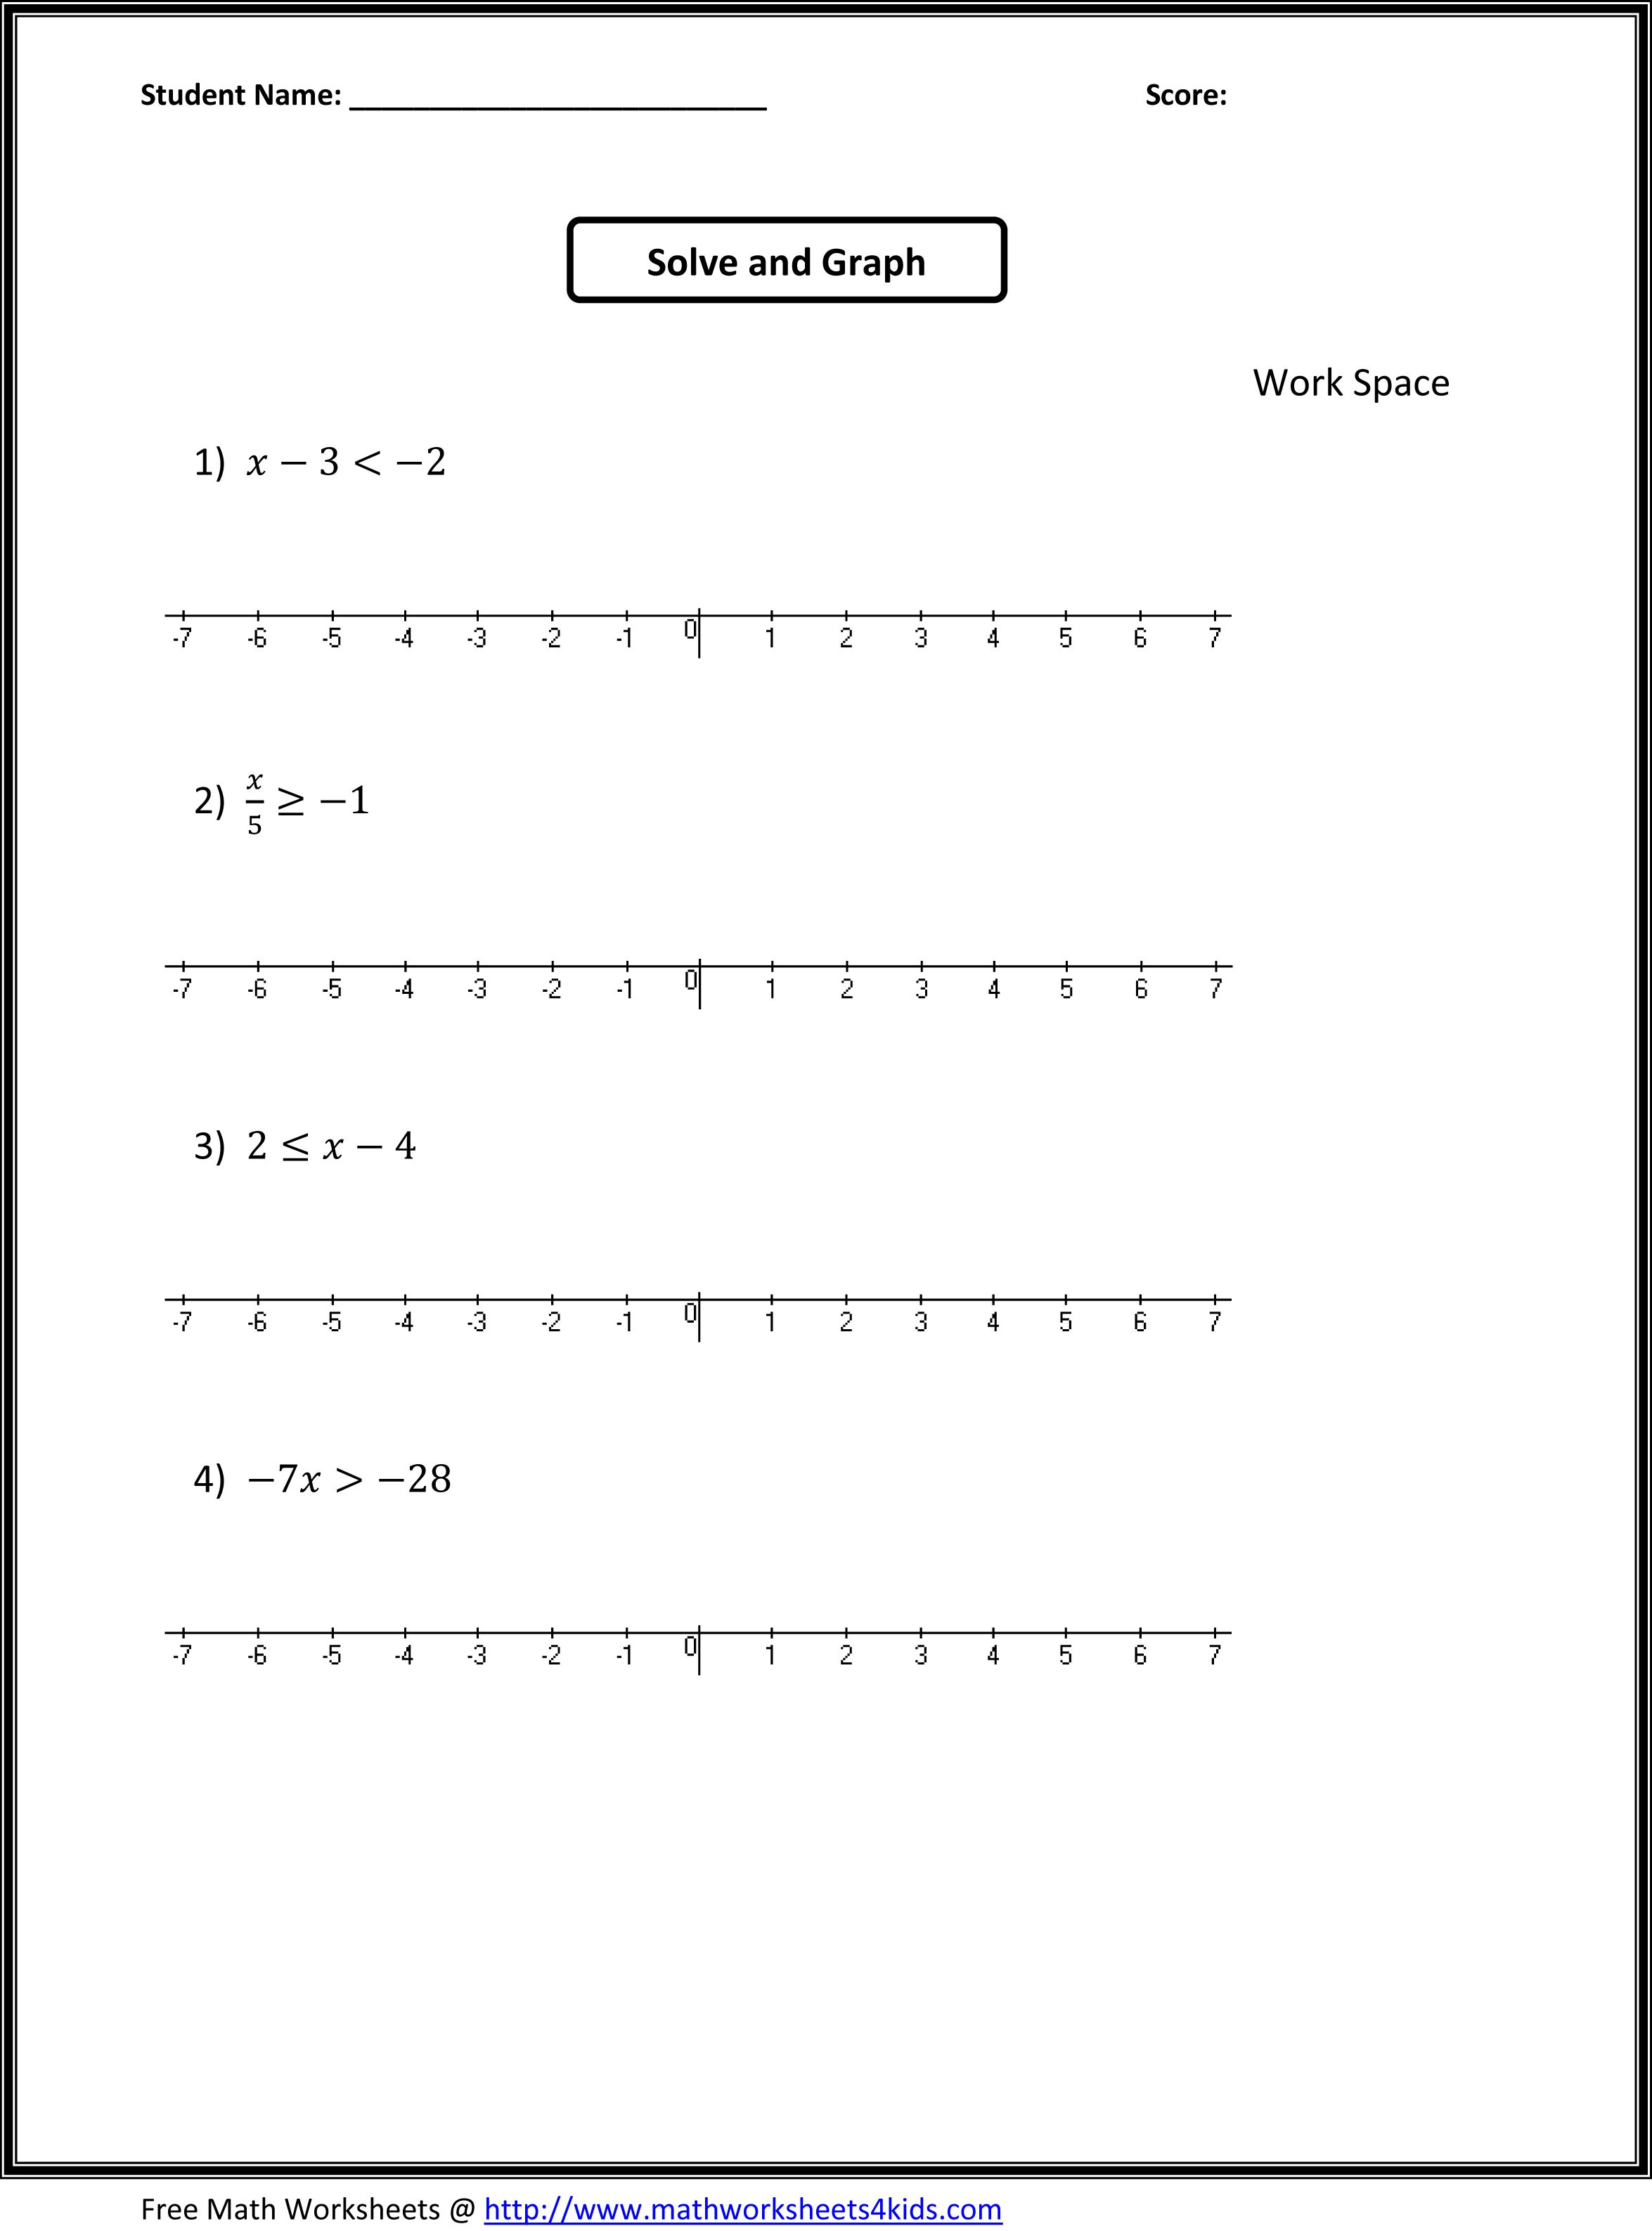 Printables Math Worksheets For 7th Grade 7th grade math worksheets value absolute algebra worksheets